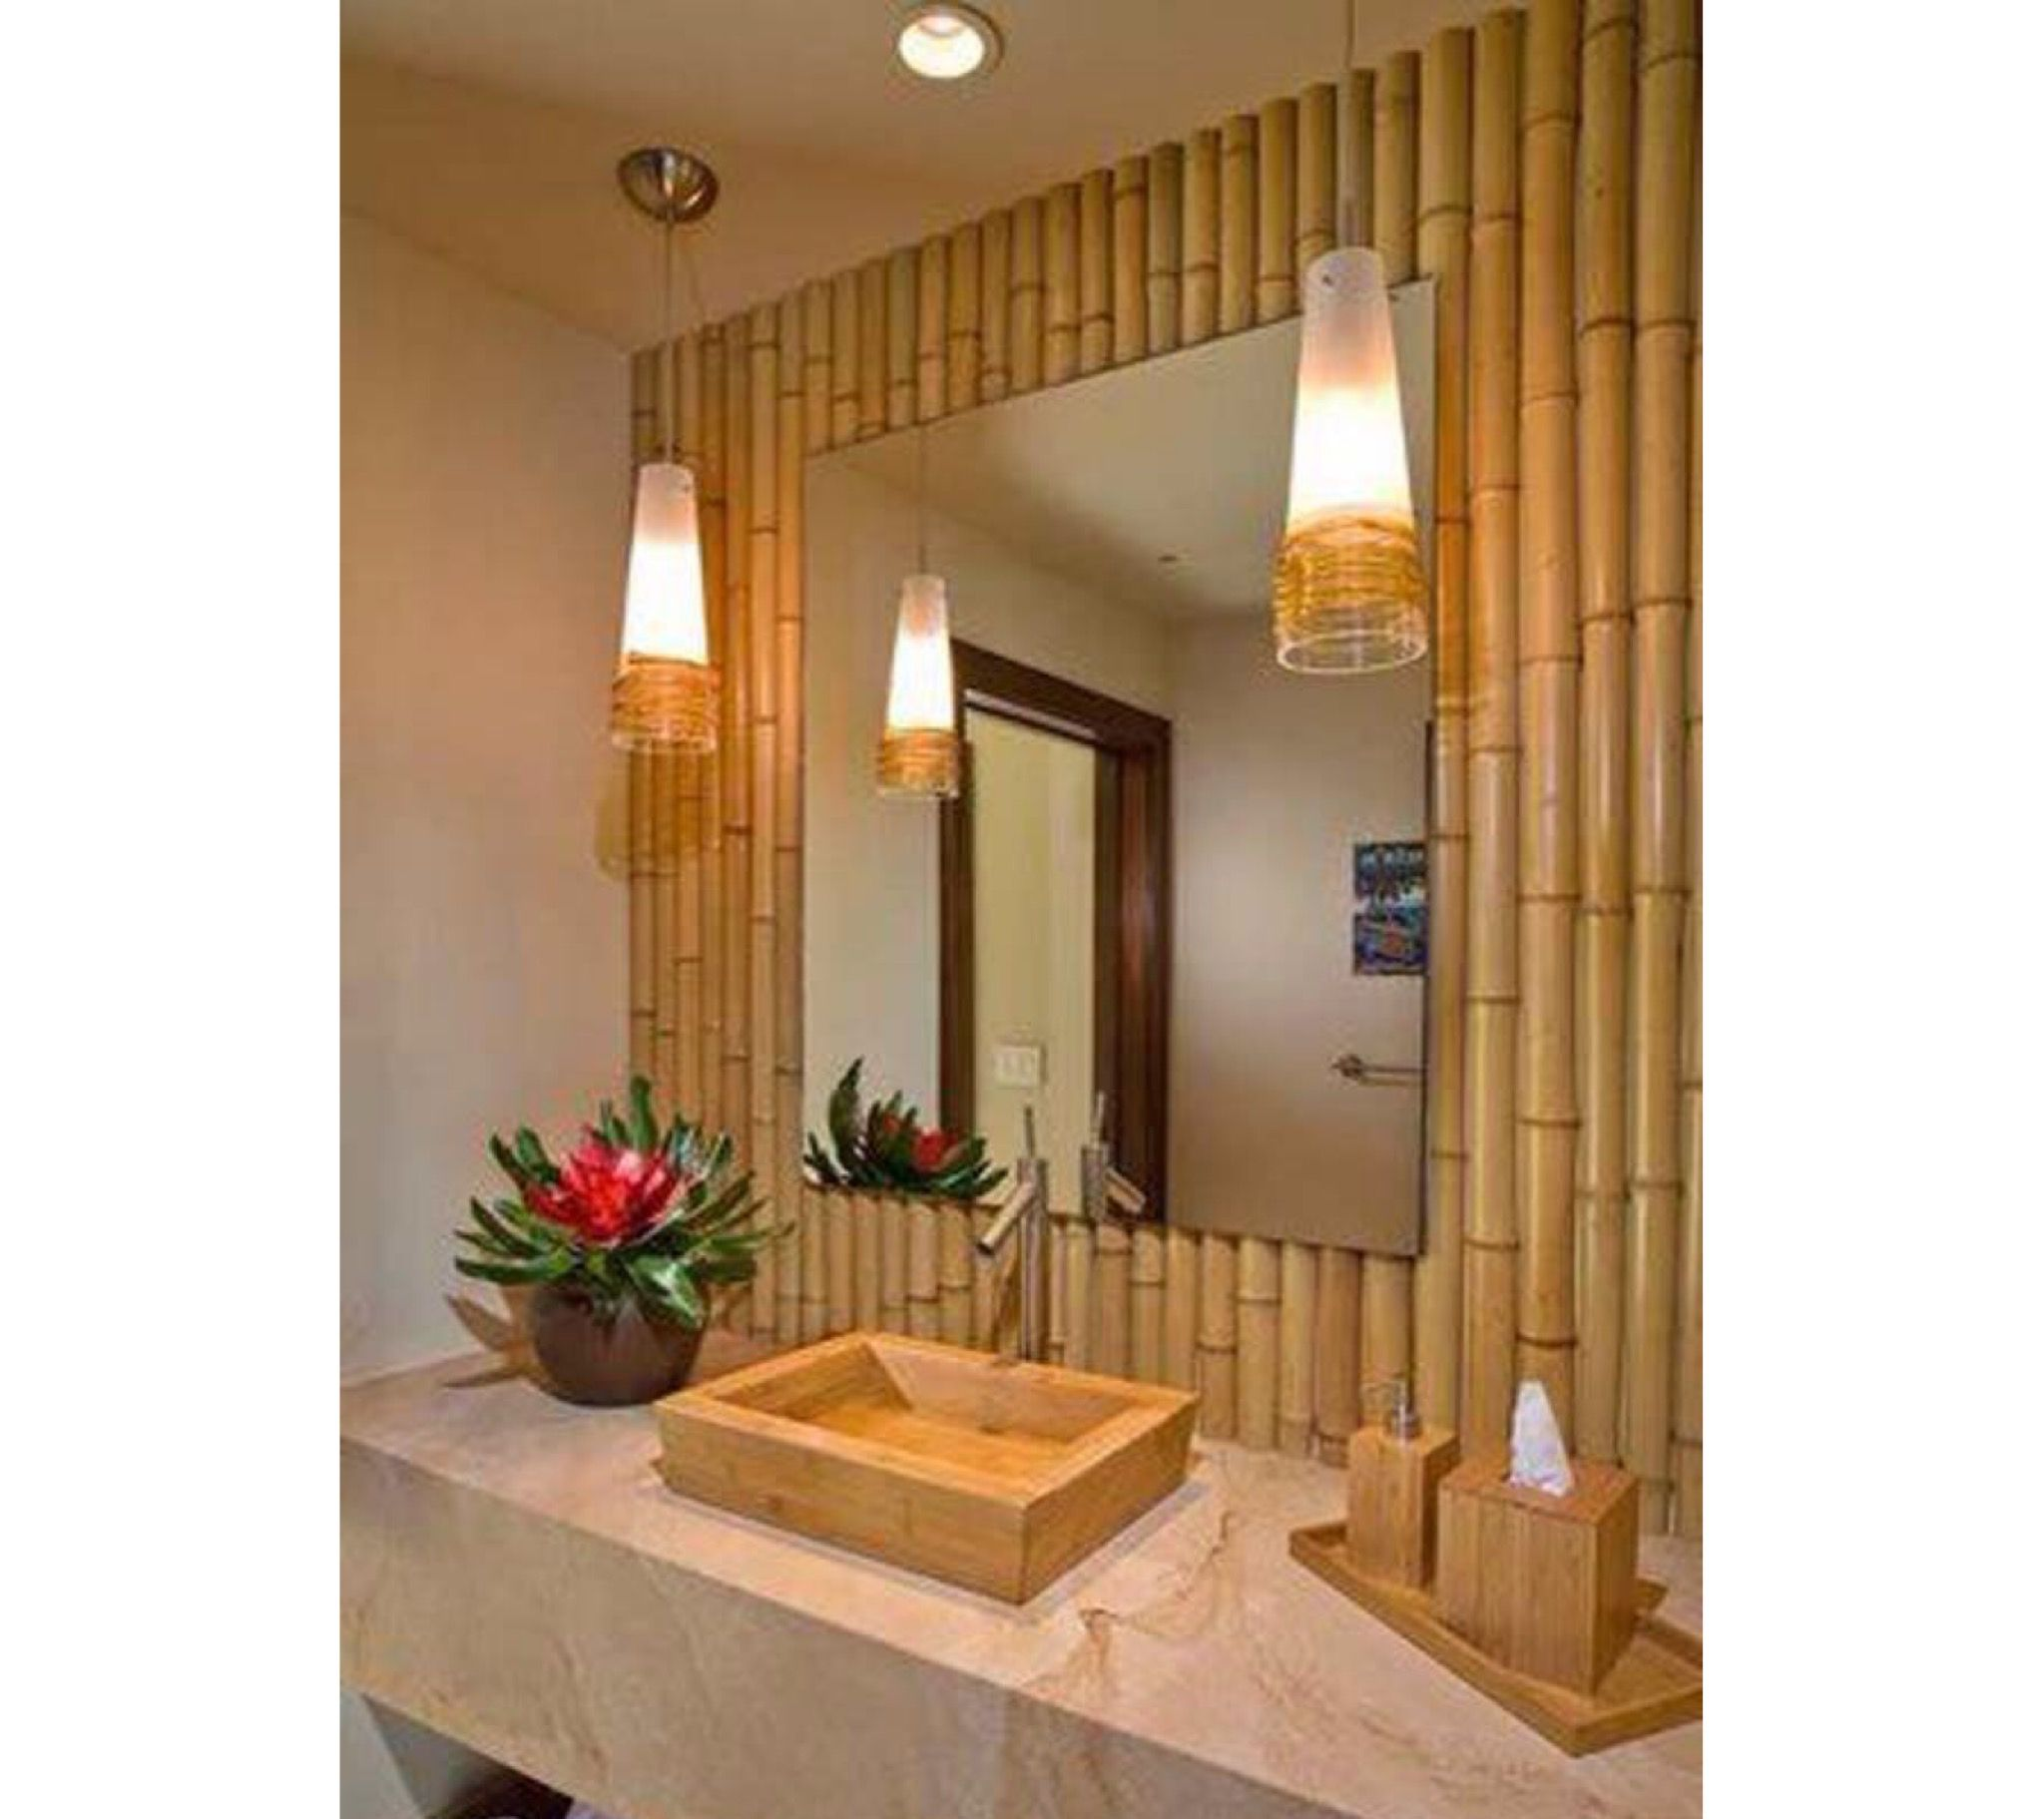 Add style to your bathroom with an accent wall made of bamboo❣   bicoastalsoutherngirl  southernbelle  blessed  realestate  design  dreamer   dreamhome ... 22b99c792e